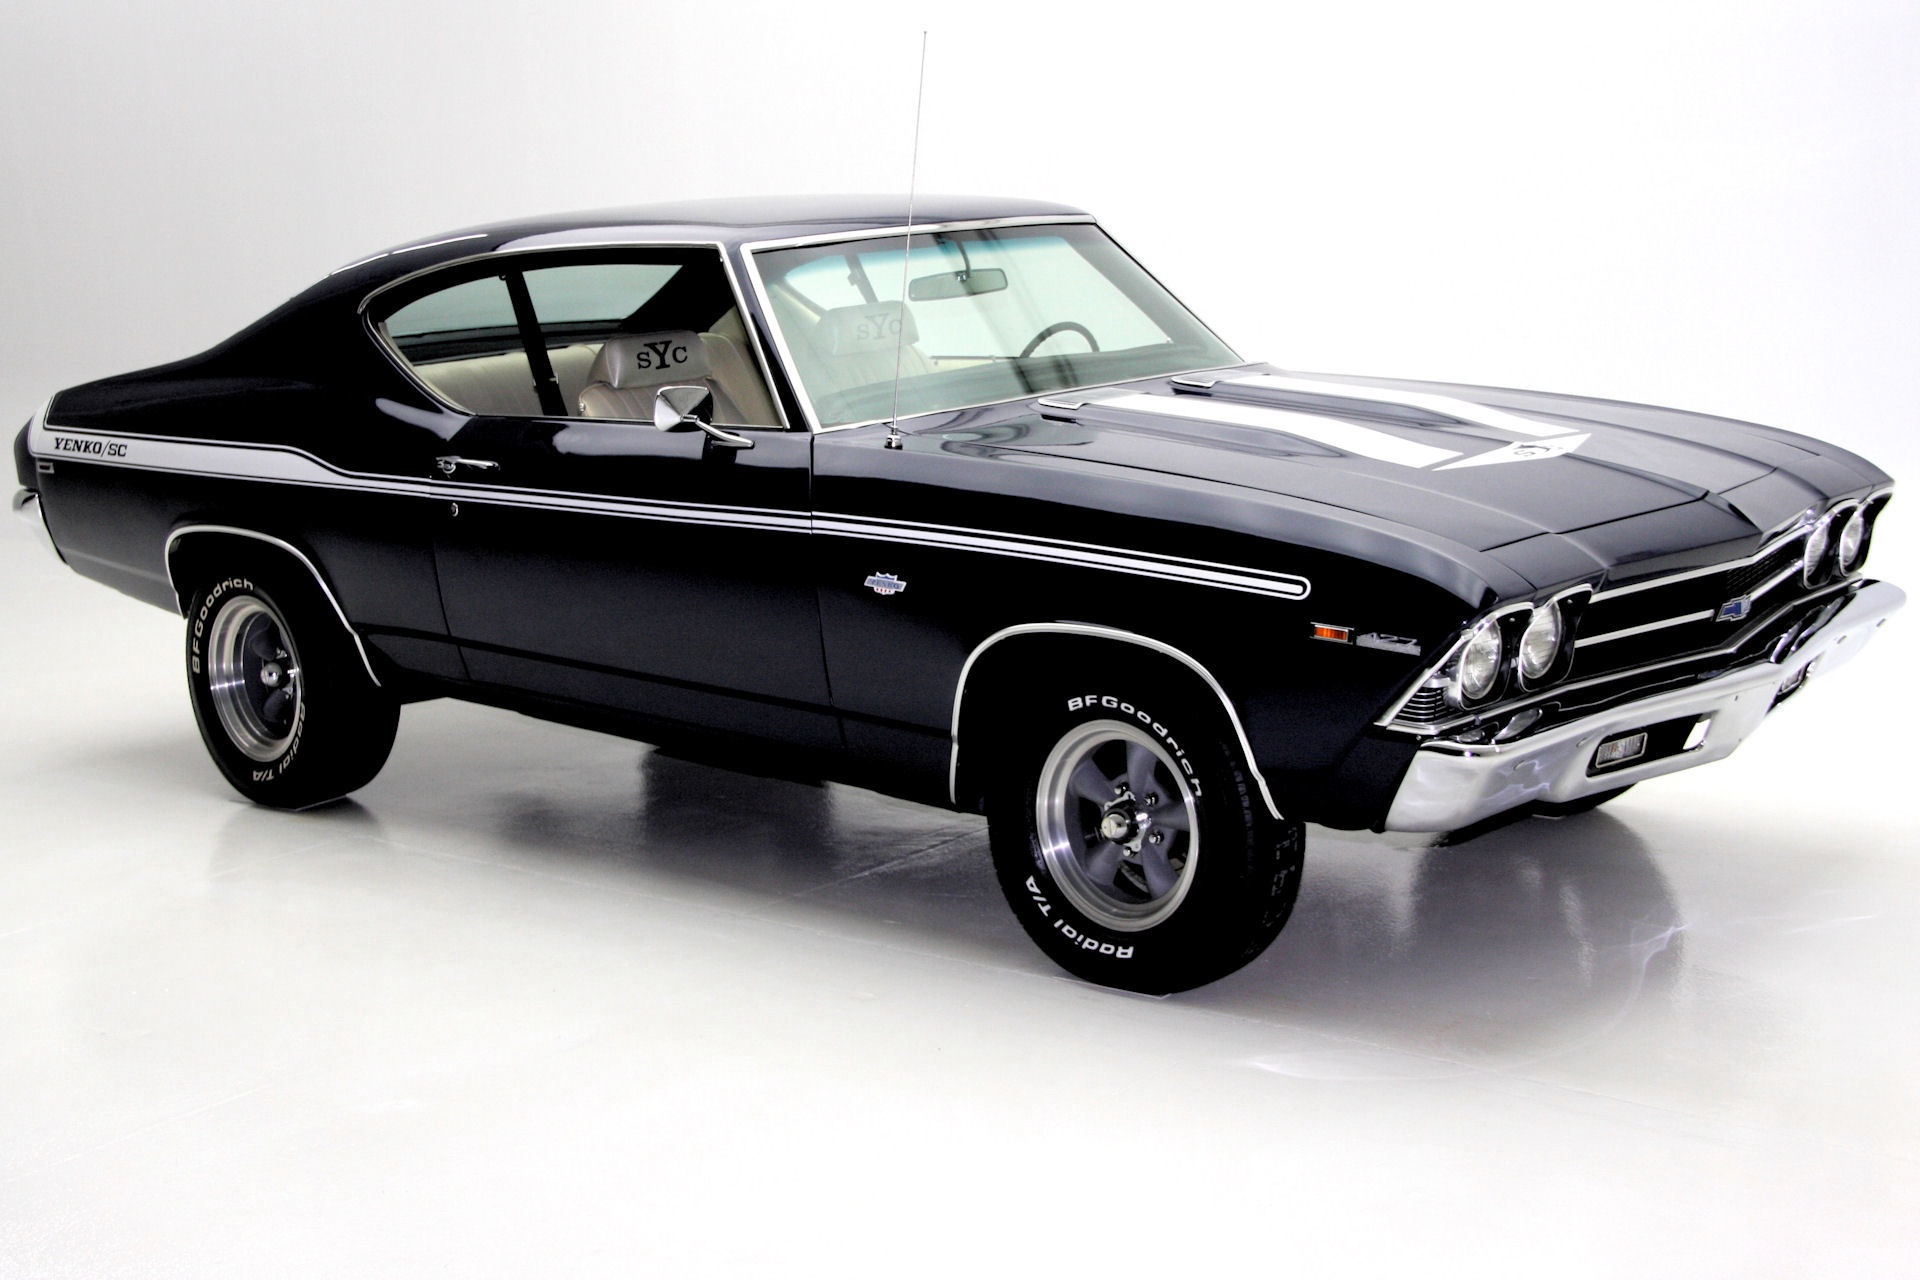 1969 Chevrolet Chevelle Yenko Big block 4-speed - American Dream ...